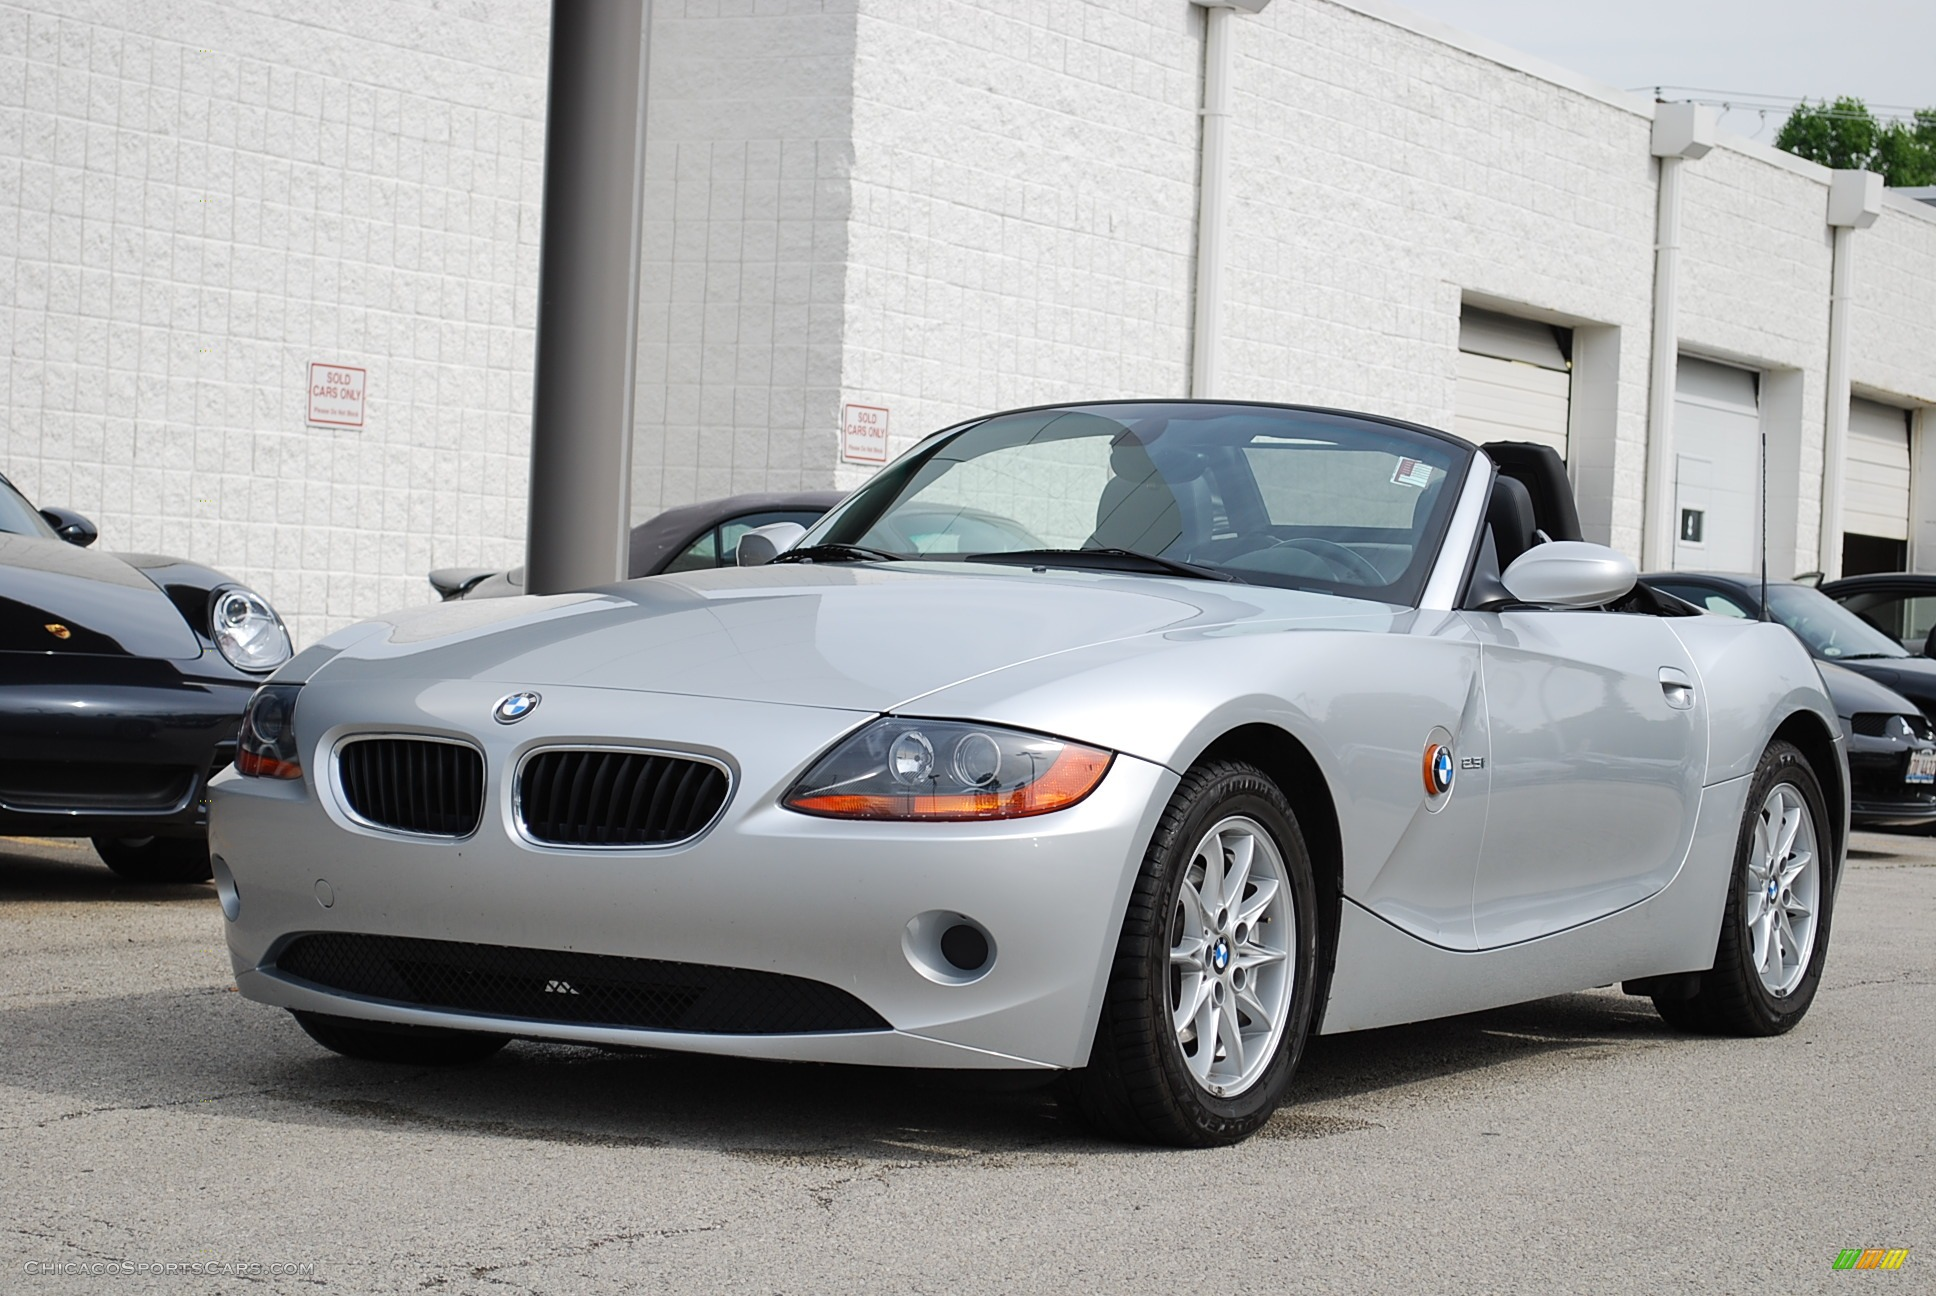 2004 Bmw Z4 2 5i Roadster In Titanium Silver Metallic